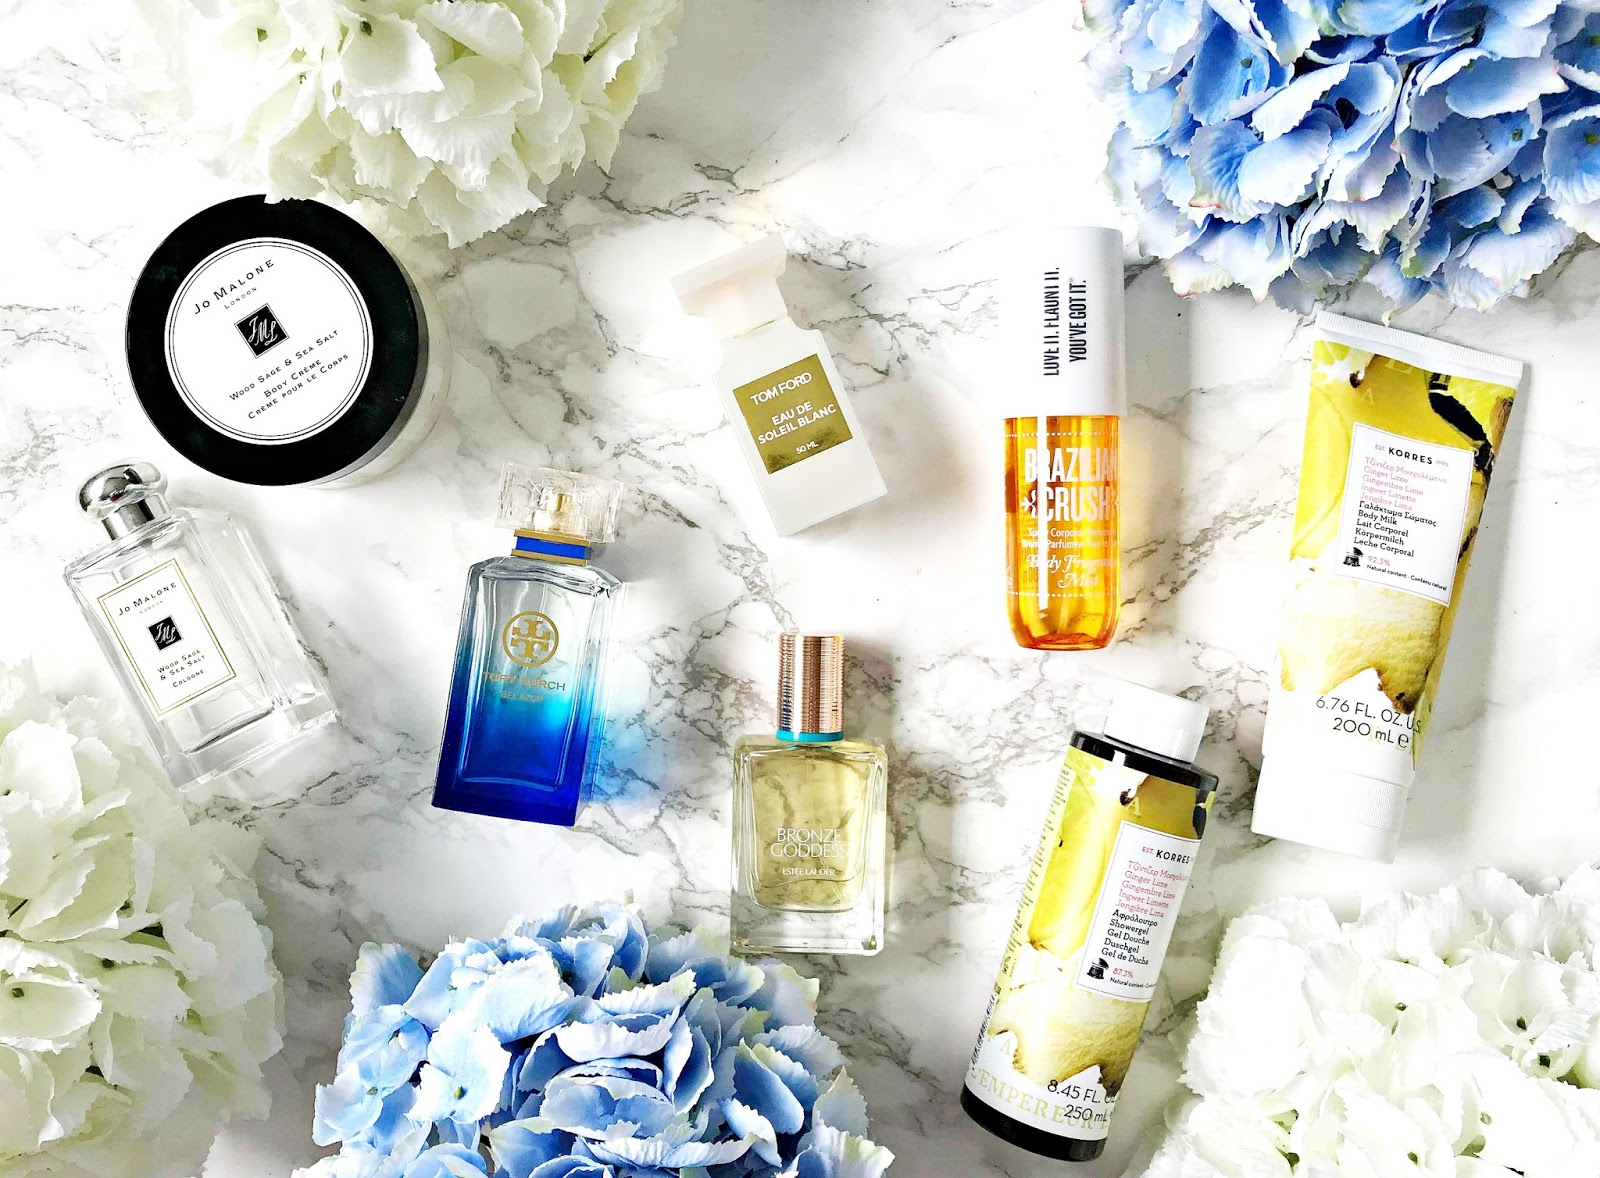 Estée Lauder Bronze Goddess, Jo Malone Wood Sage & Sea Salt, Korres Ginger Lime, Sol De Janeiro Brazilian Bum Bum Cream & Body Mist, Tom Ford Eau De Soleil Blanc, Tory Burch Bel Azur, The scent of summer